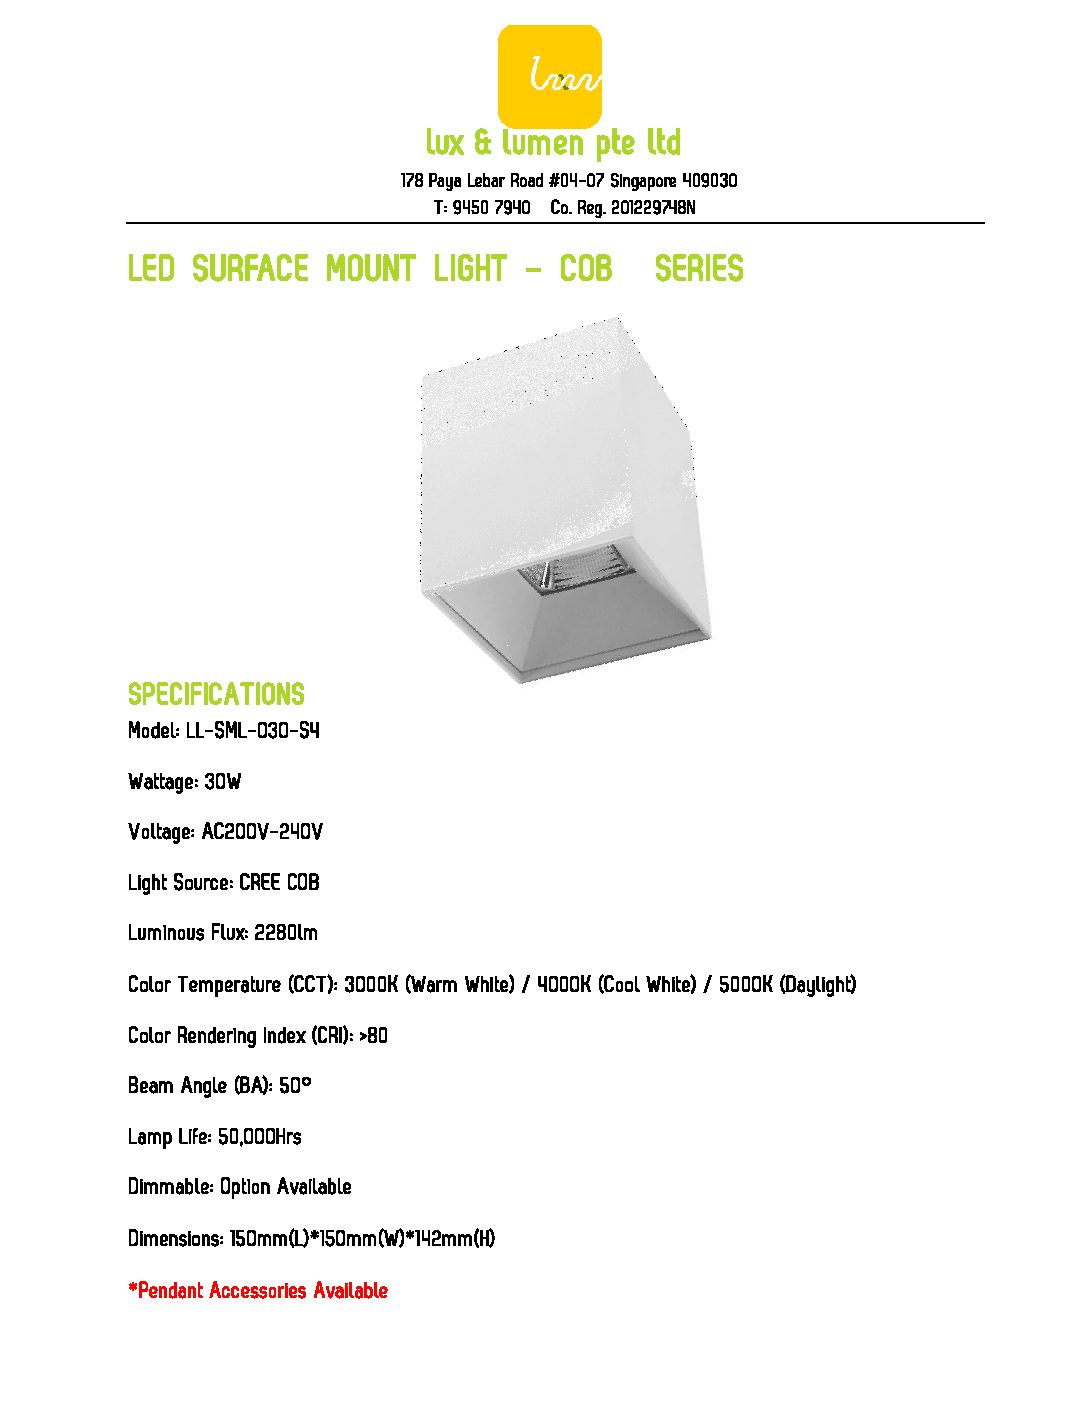 LED Surface Mount Light COB Series S030